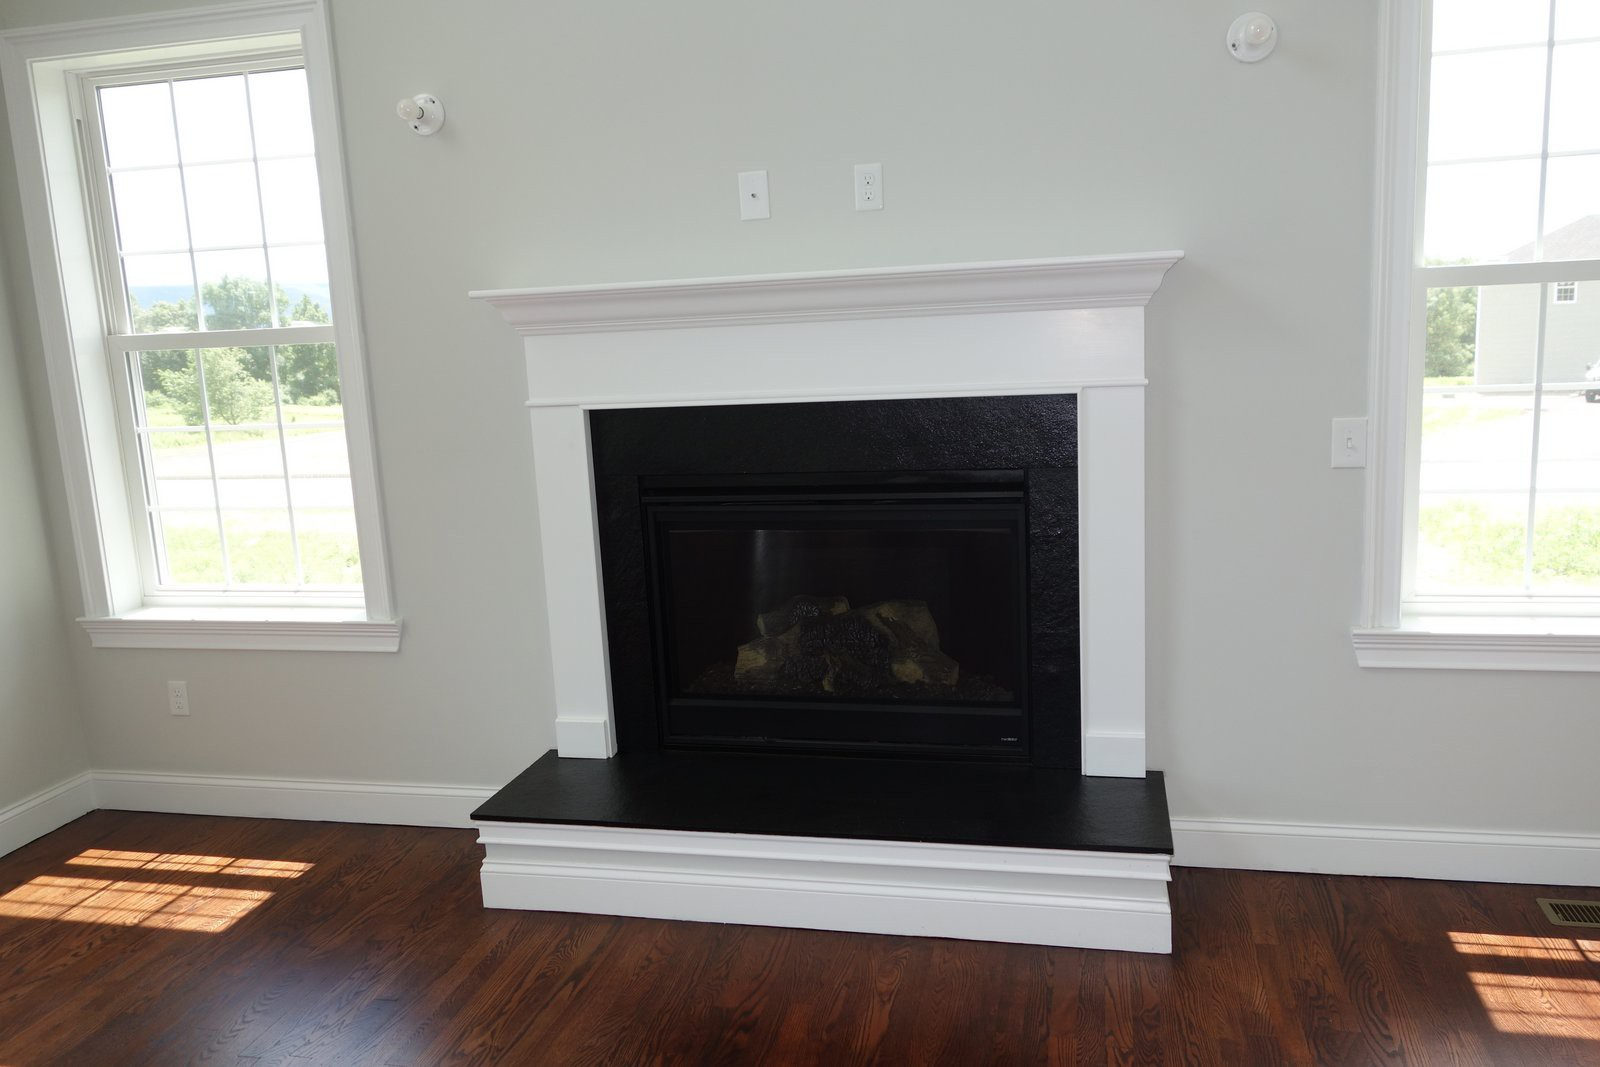 Gas Fireplace Repair Orange County Ny Fireplaces